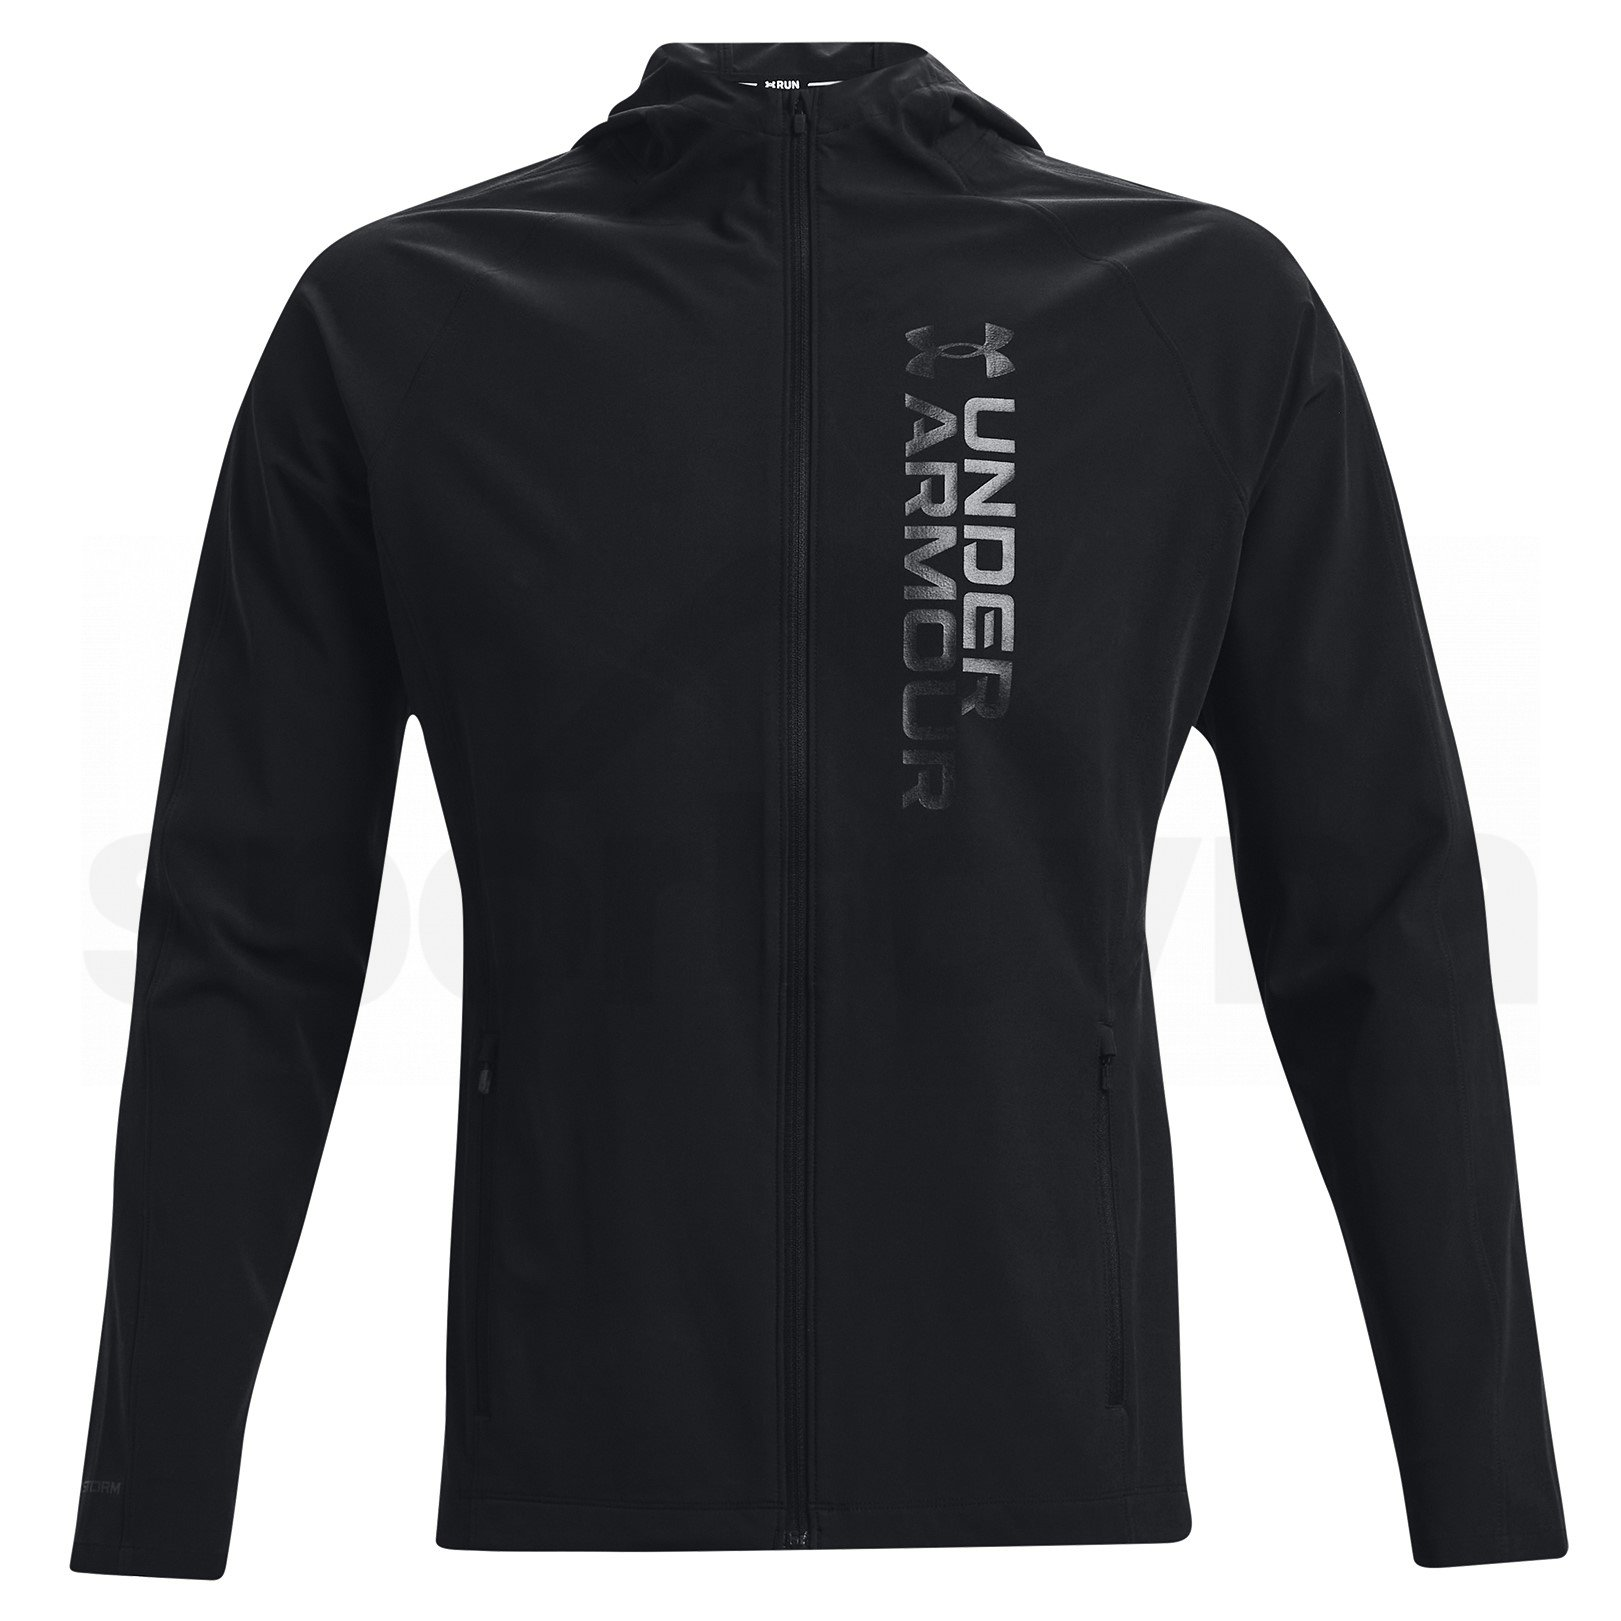 1361502-001_Under Armour OutRun the Storm Jacket